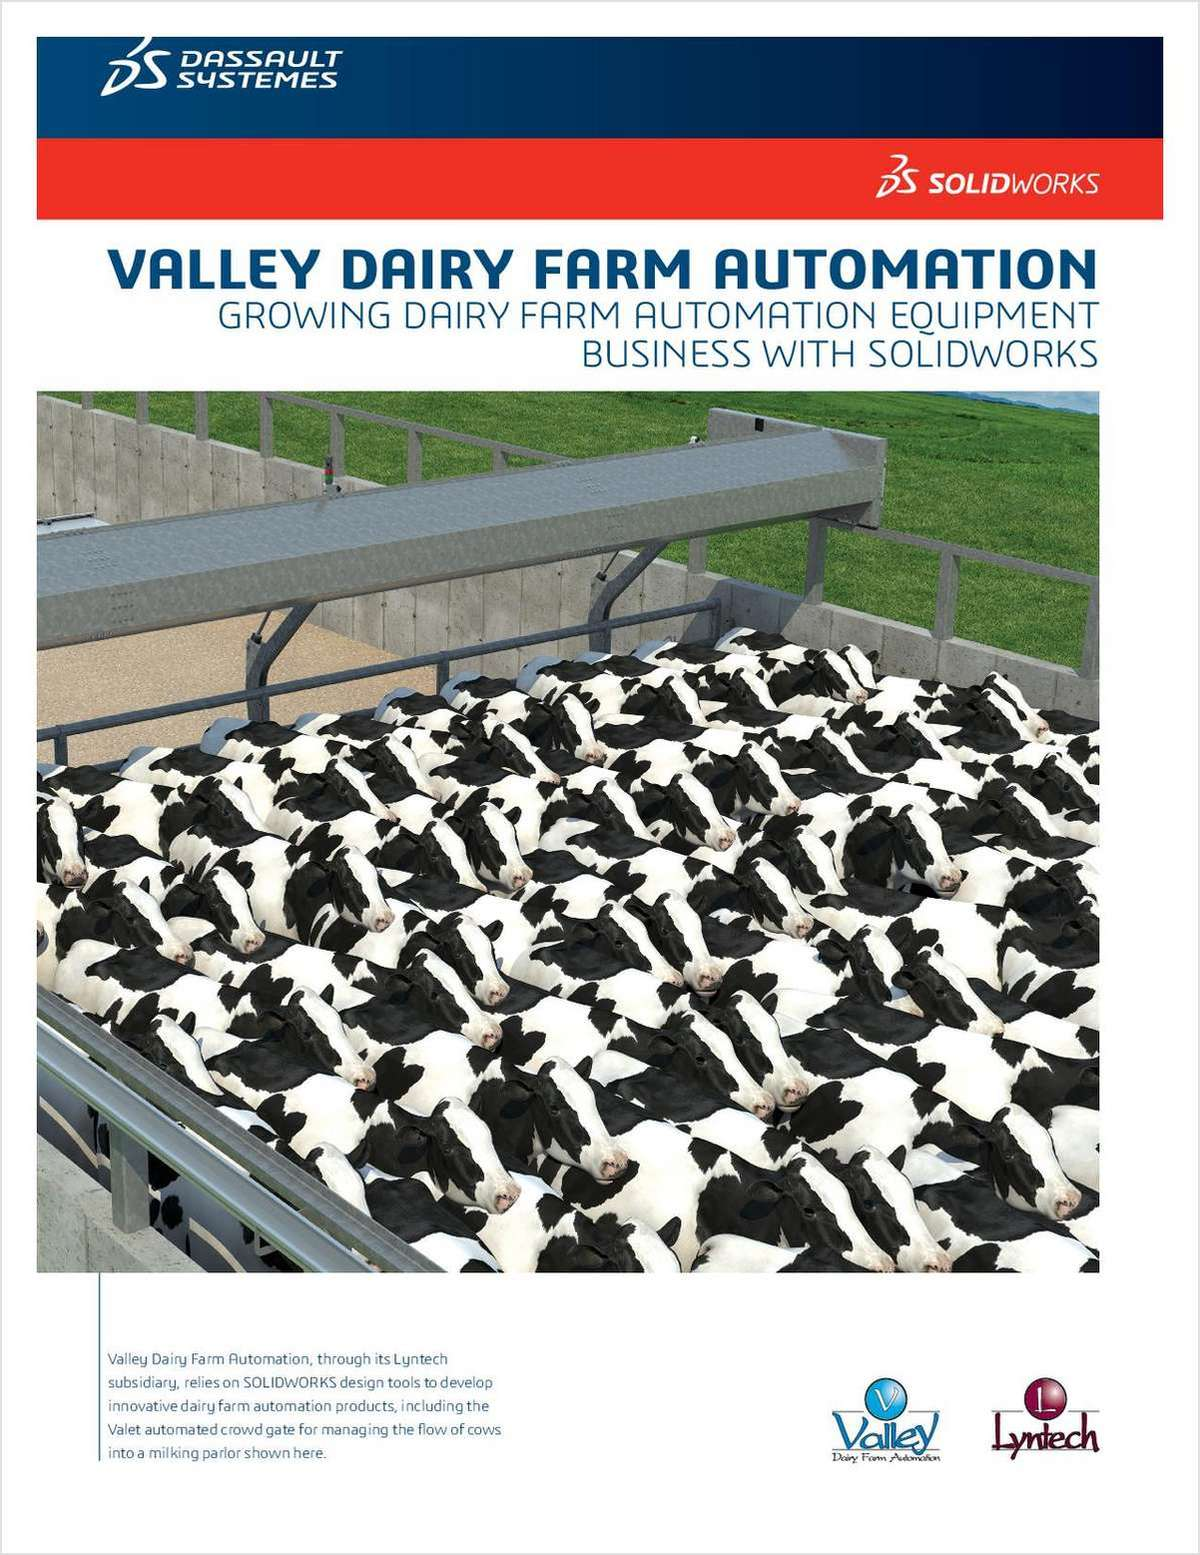 SOLIDWORKS® Solutions for Valley Dairy Farm Automation